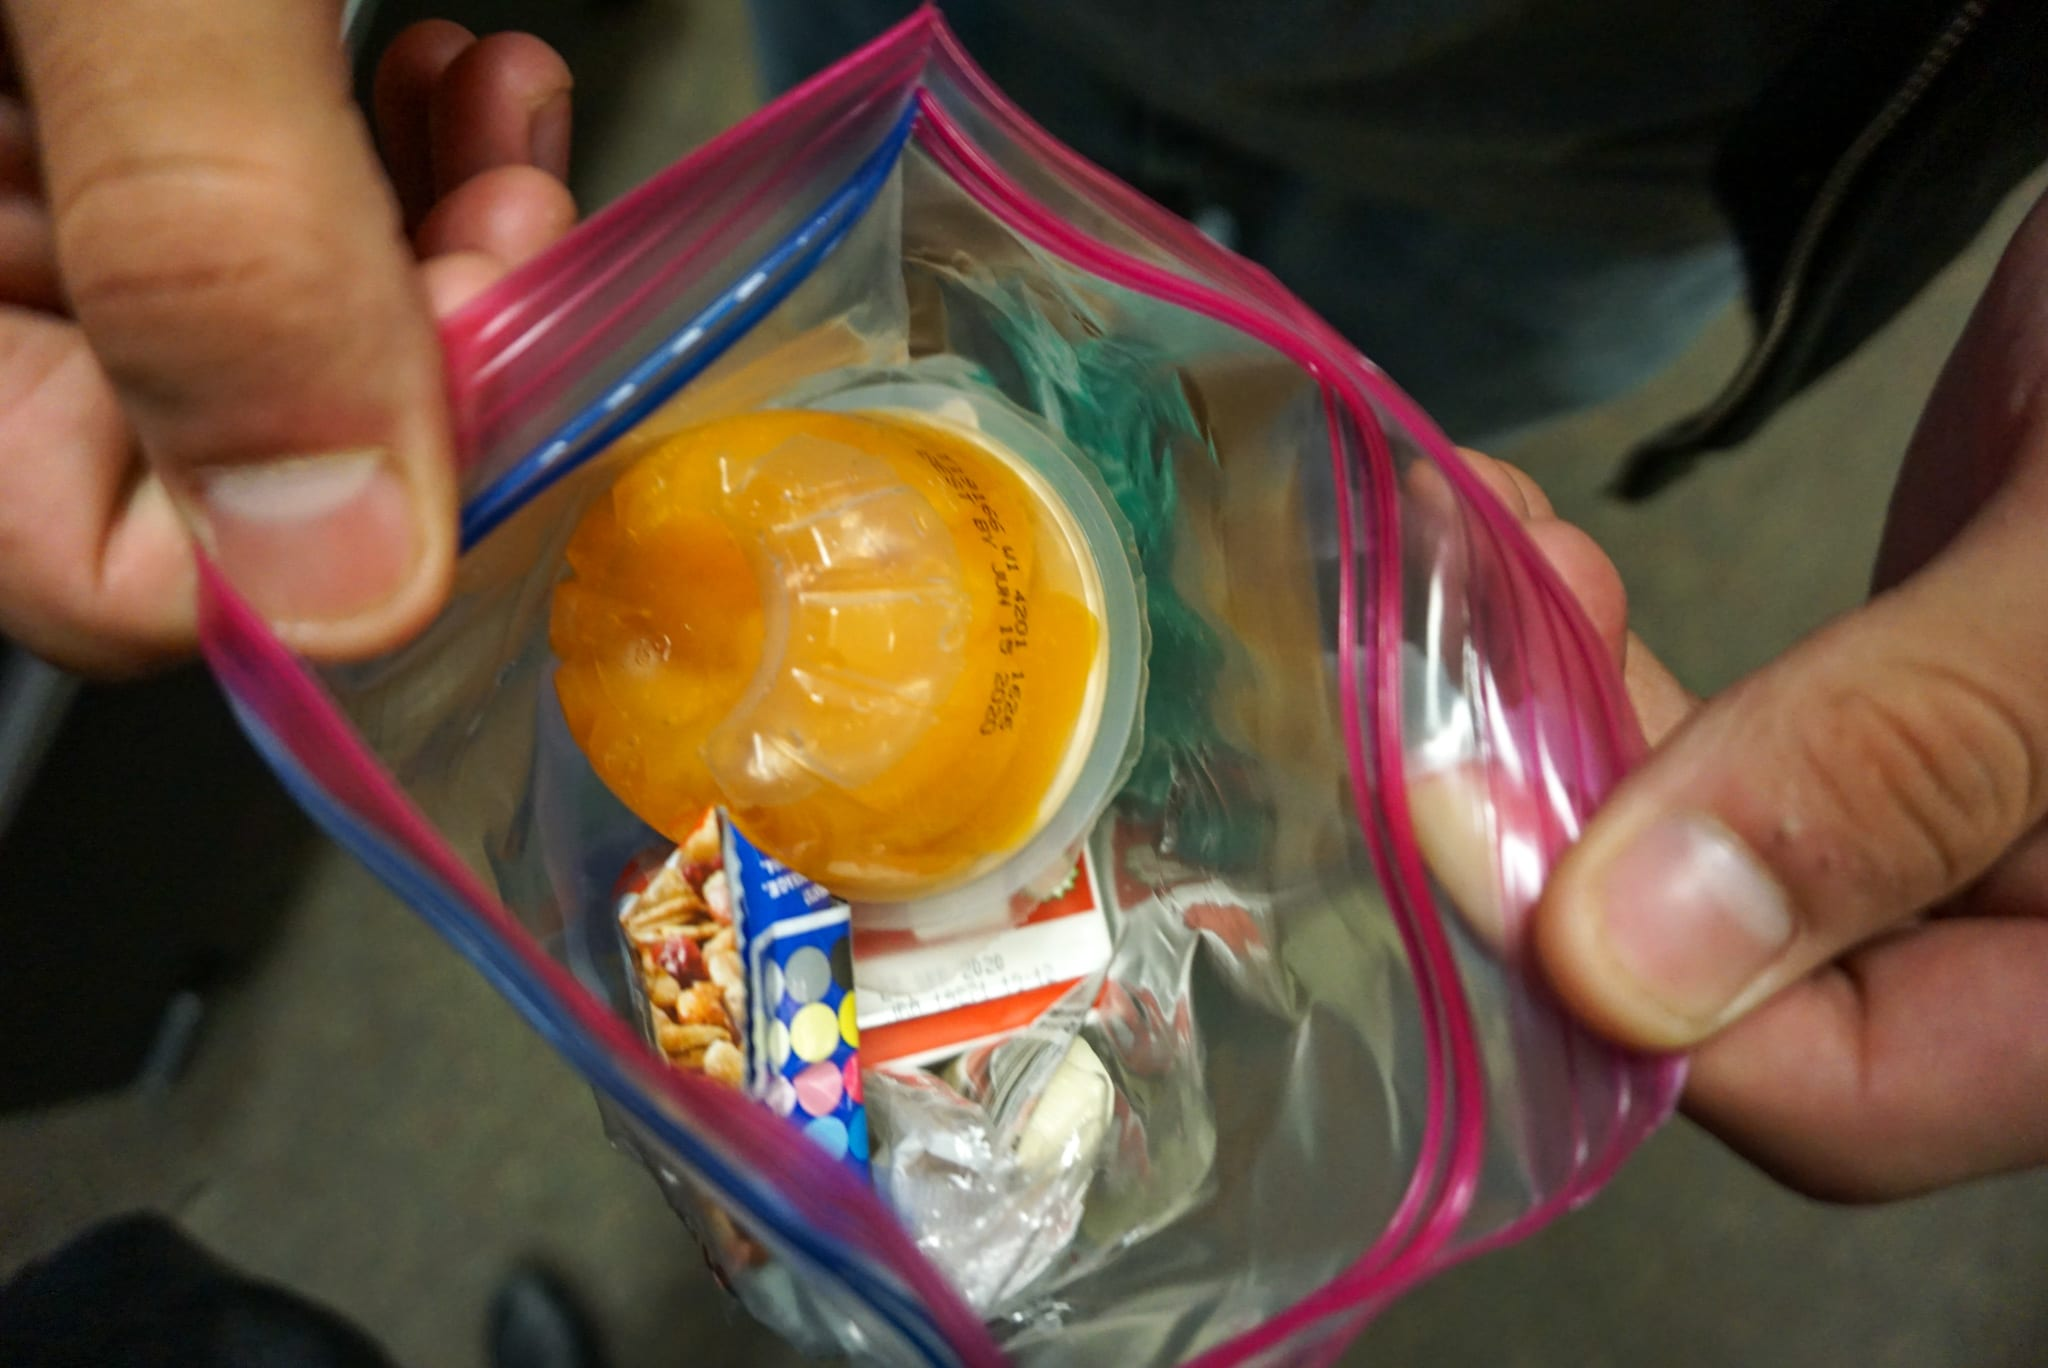 Breakfast items from the vending machine.